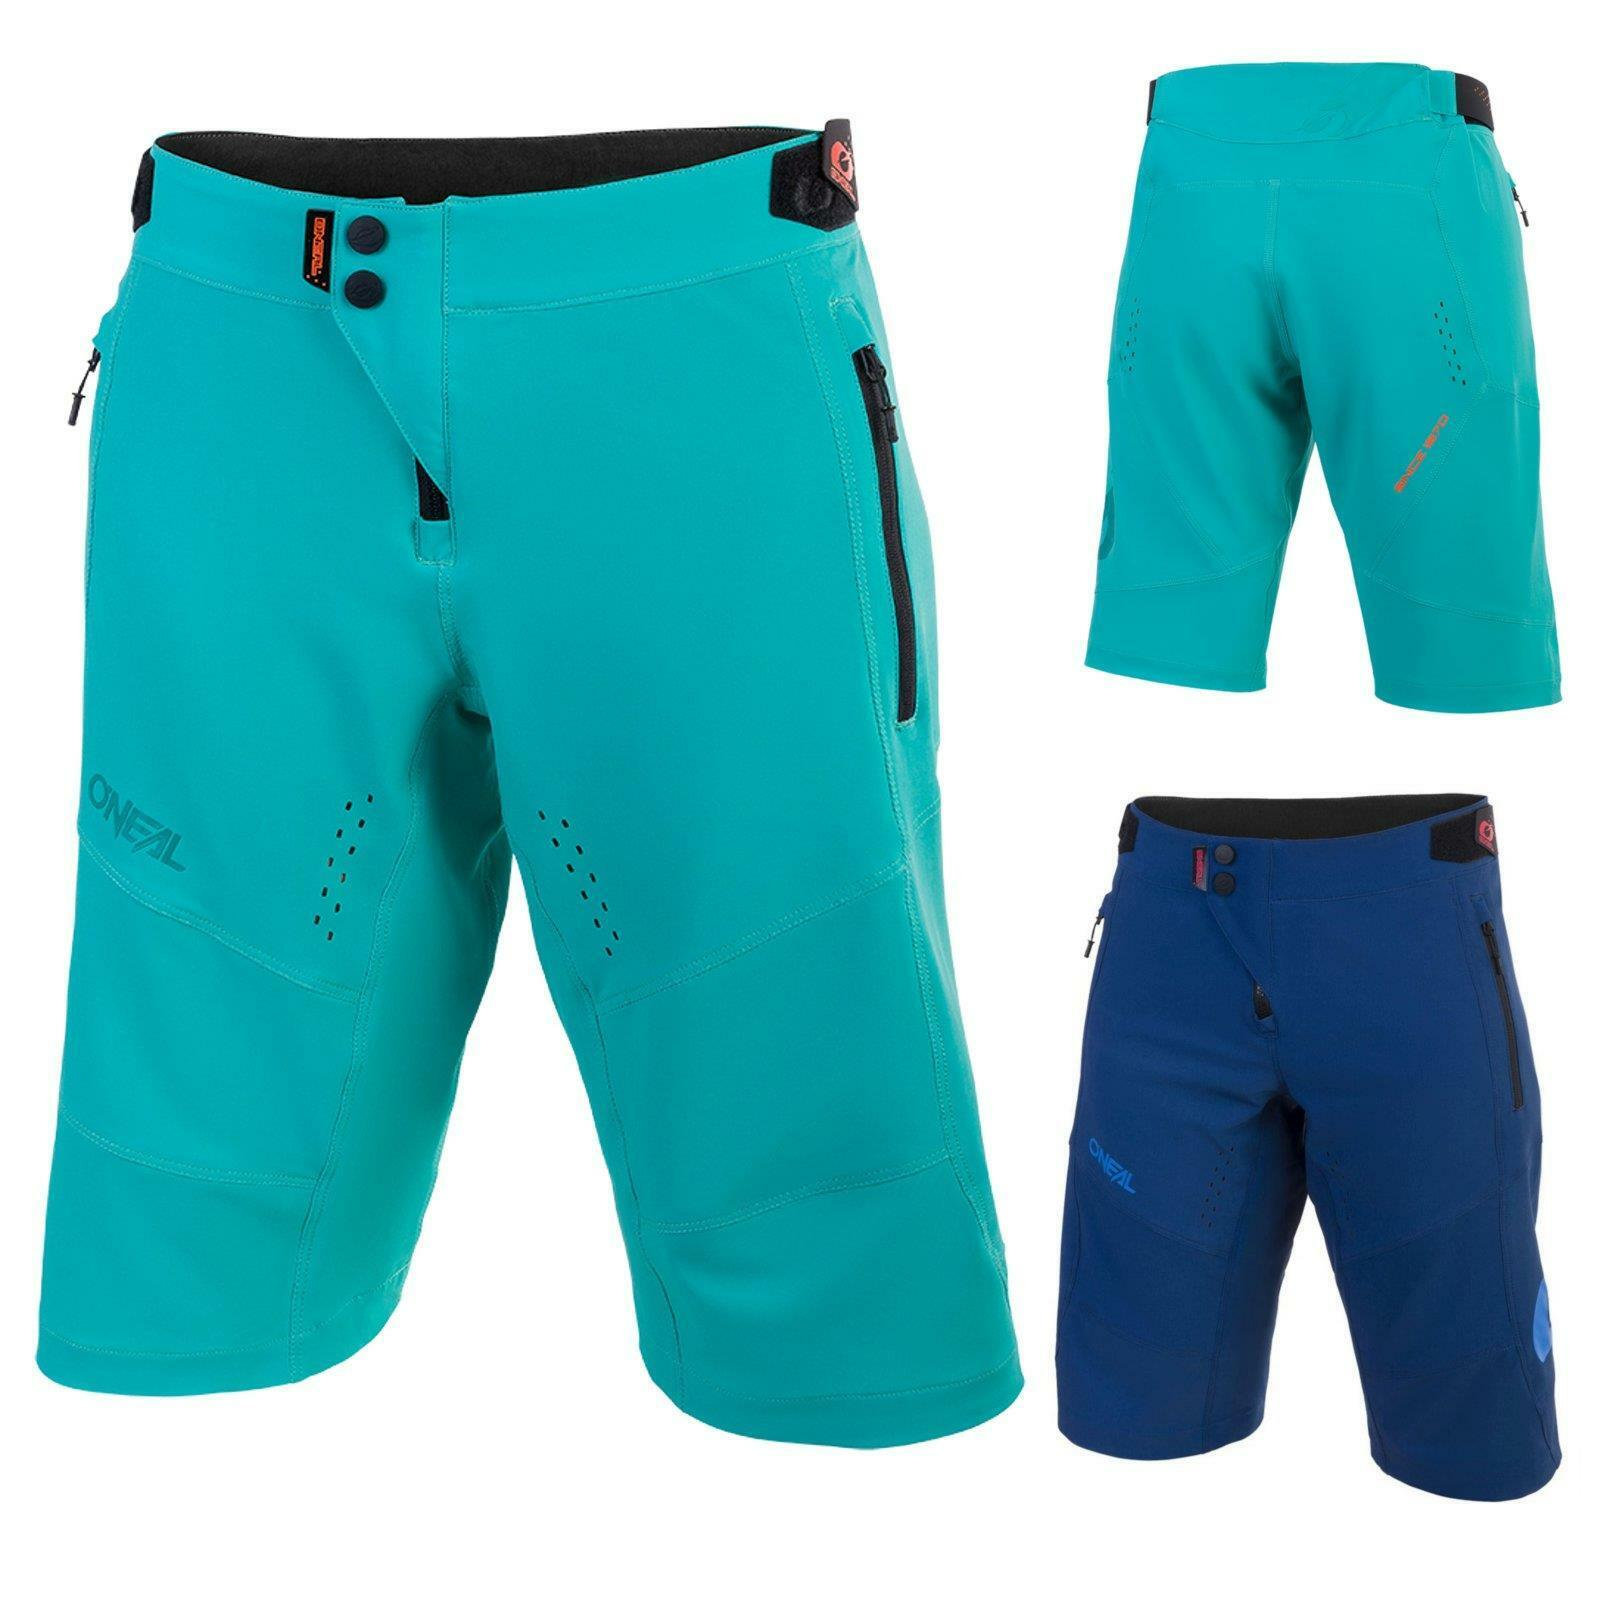 O'Neal Soul Womens Shorts Bicycle MTB  Shorts All Mountain Bike Downhill BMX  save up to 70%